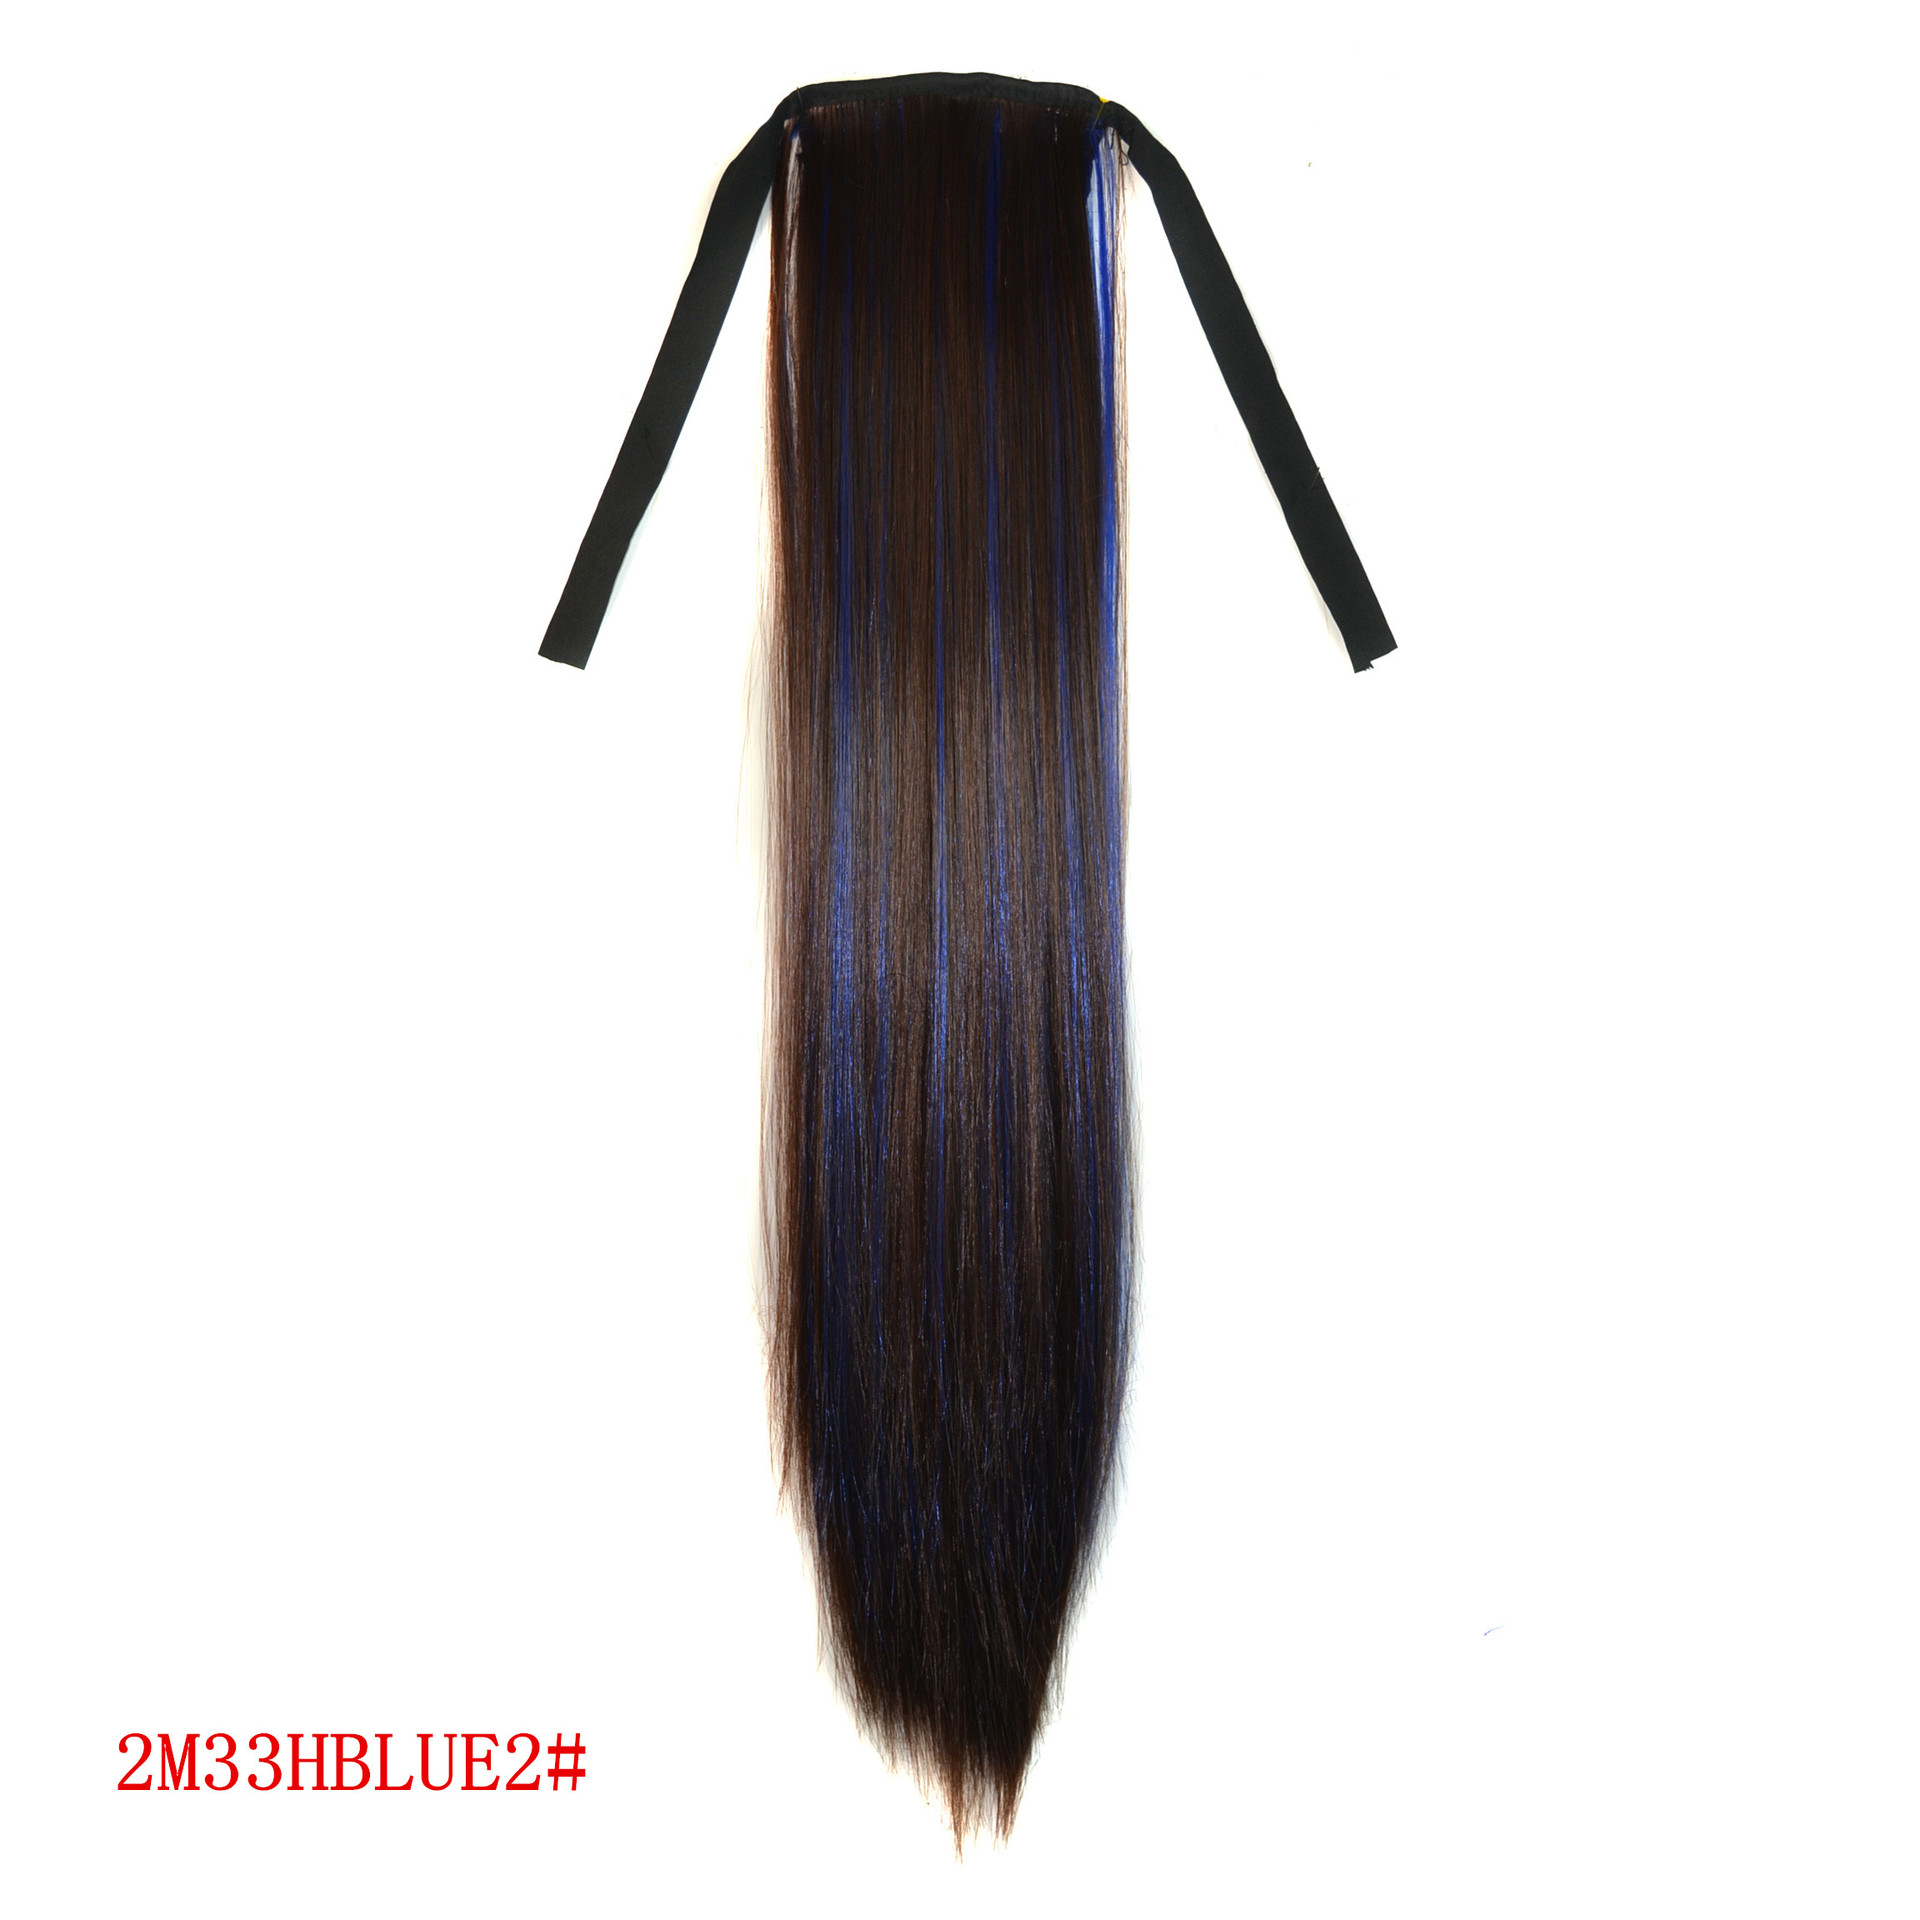 Hight quality hair accessories 80g 55cm straight hair jewelry extension synthetic hairwear for womens bundled ponytails